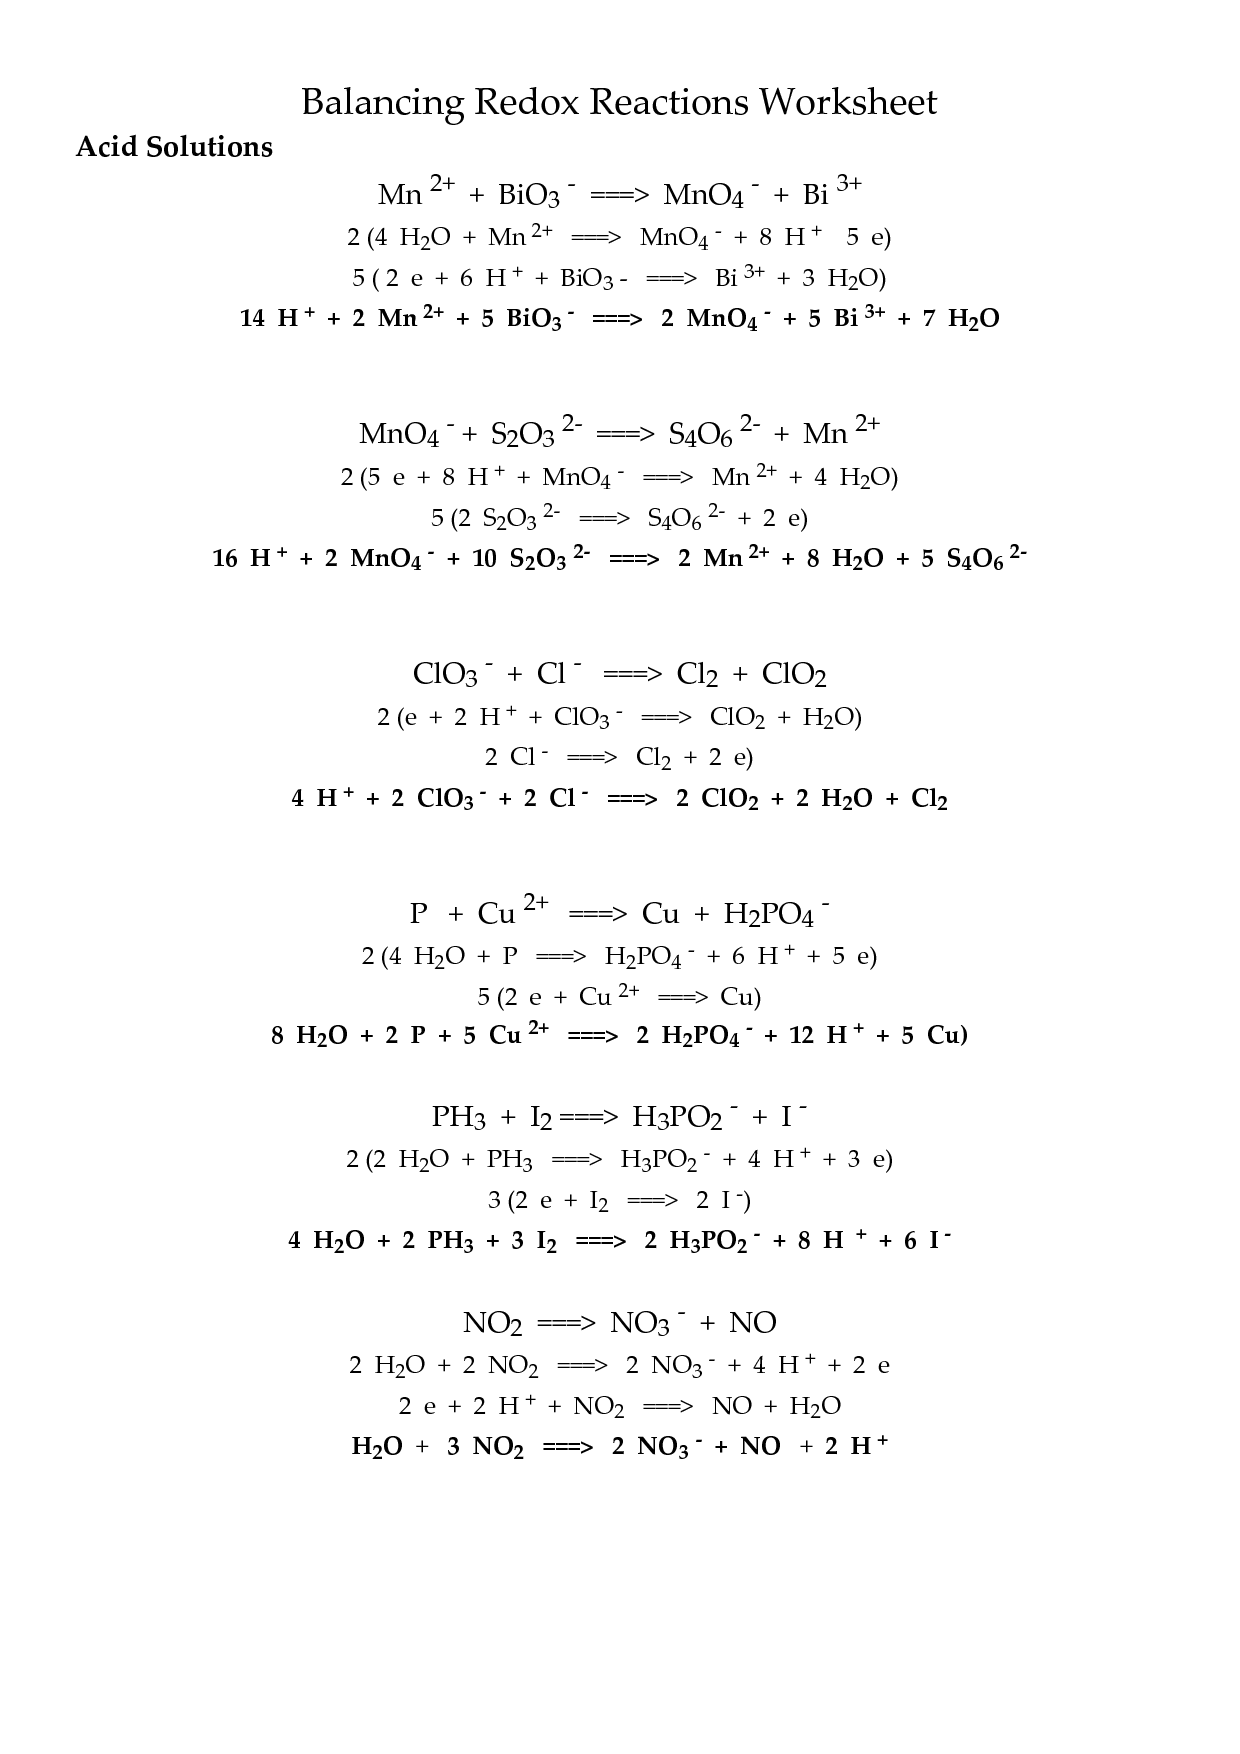 Oxidation Reduction Reactions Worksheet Promo Sapin De